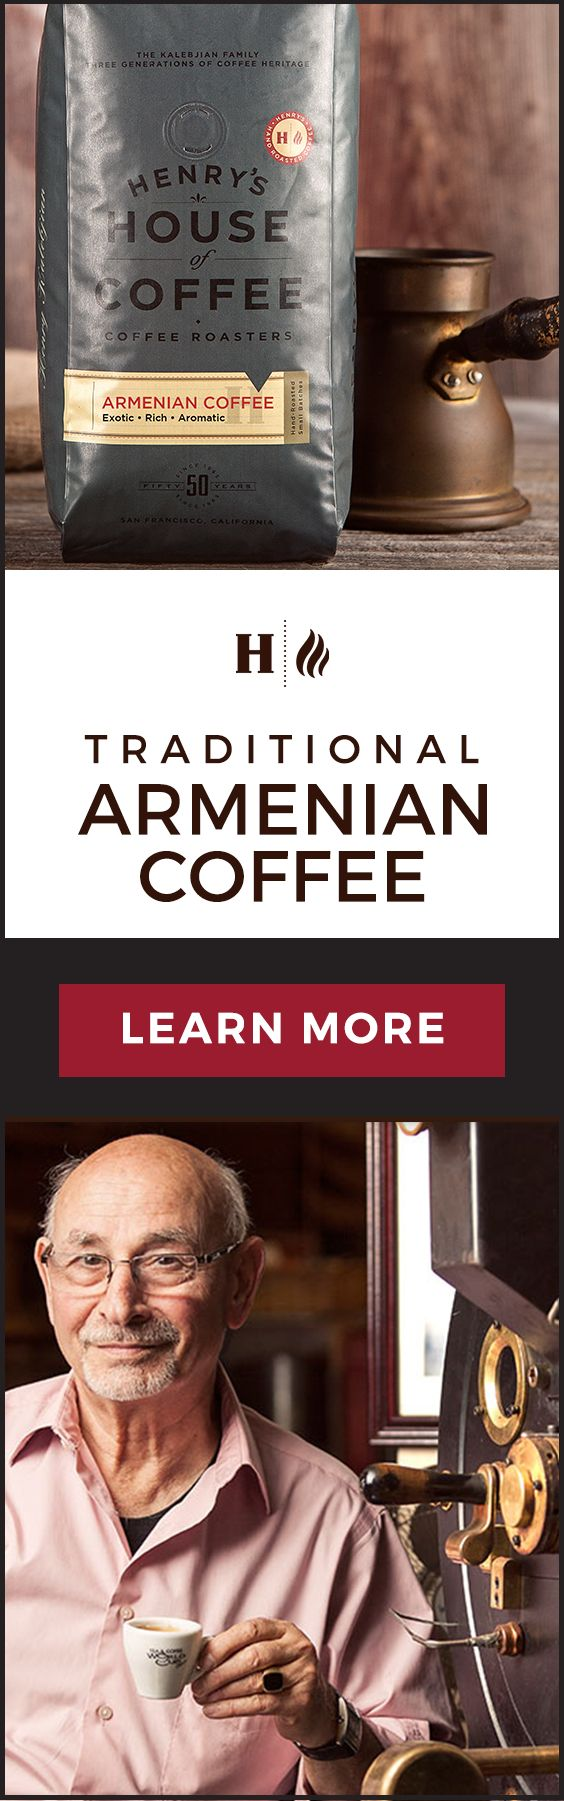 Making Armenian coffee is pretty much a routine for us.   Check out more here: http://henryshouseofcoffee.com/soorj/  We start the day with it, we drink it after lunch or early dinner. And we certainly drink it when someone comes over for a quick chat or for anything else. - Heghineh